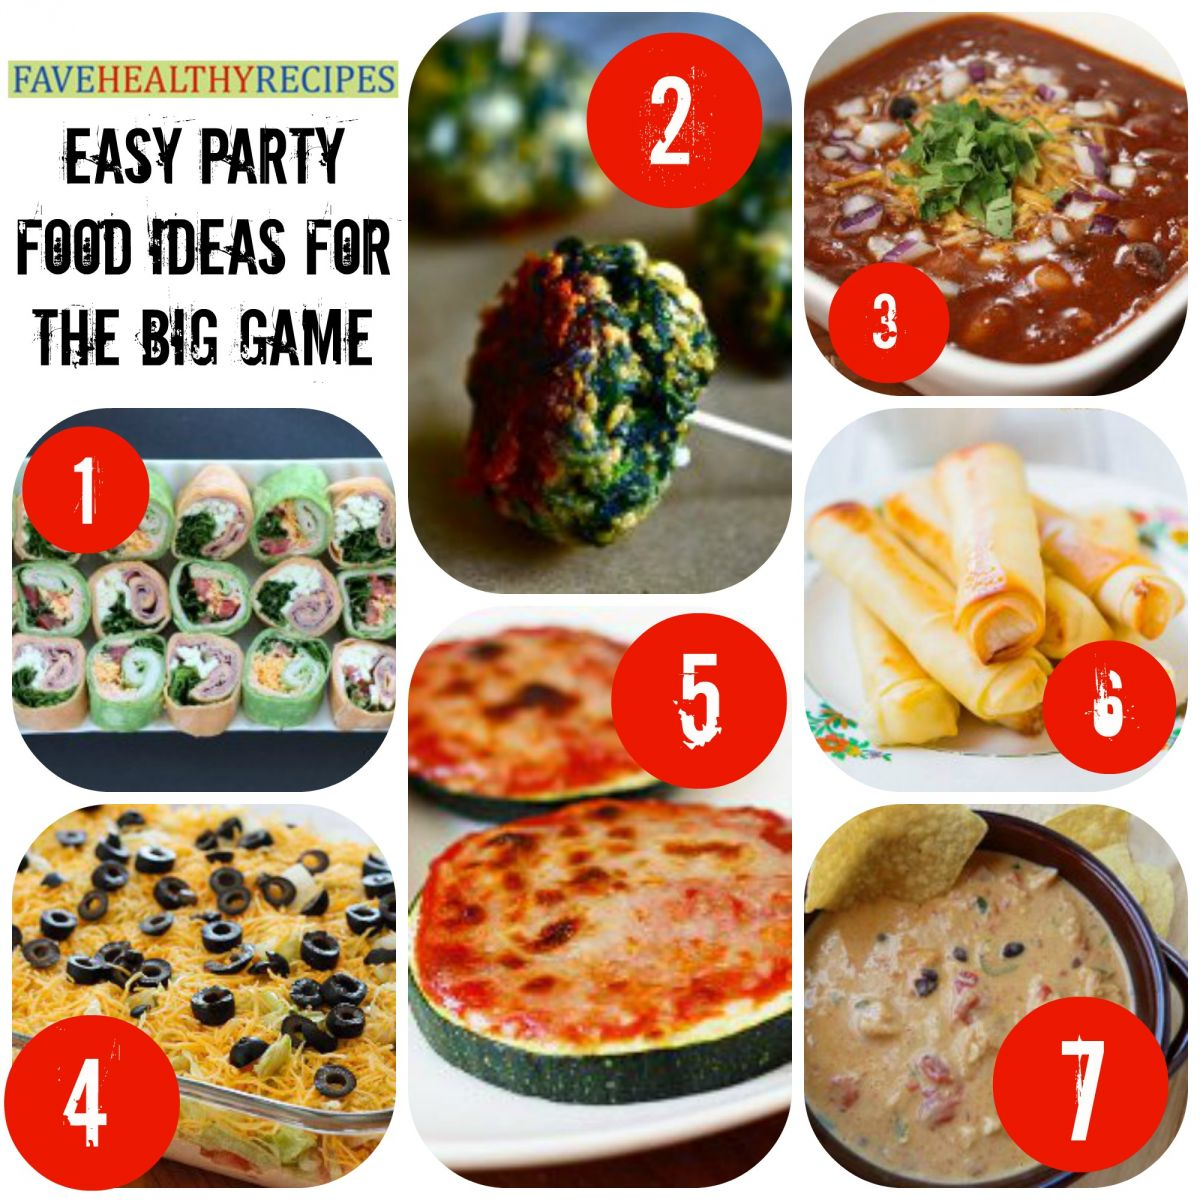 32 easy party food ideas for the big game favehealthyrecipes party food recipes that let you enjoy the game without feeling like a lineman scroll all the way down the page for links to the recipes shown below forumfinder Gallery